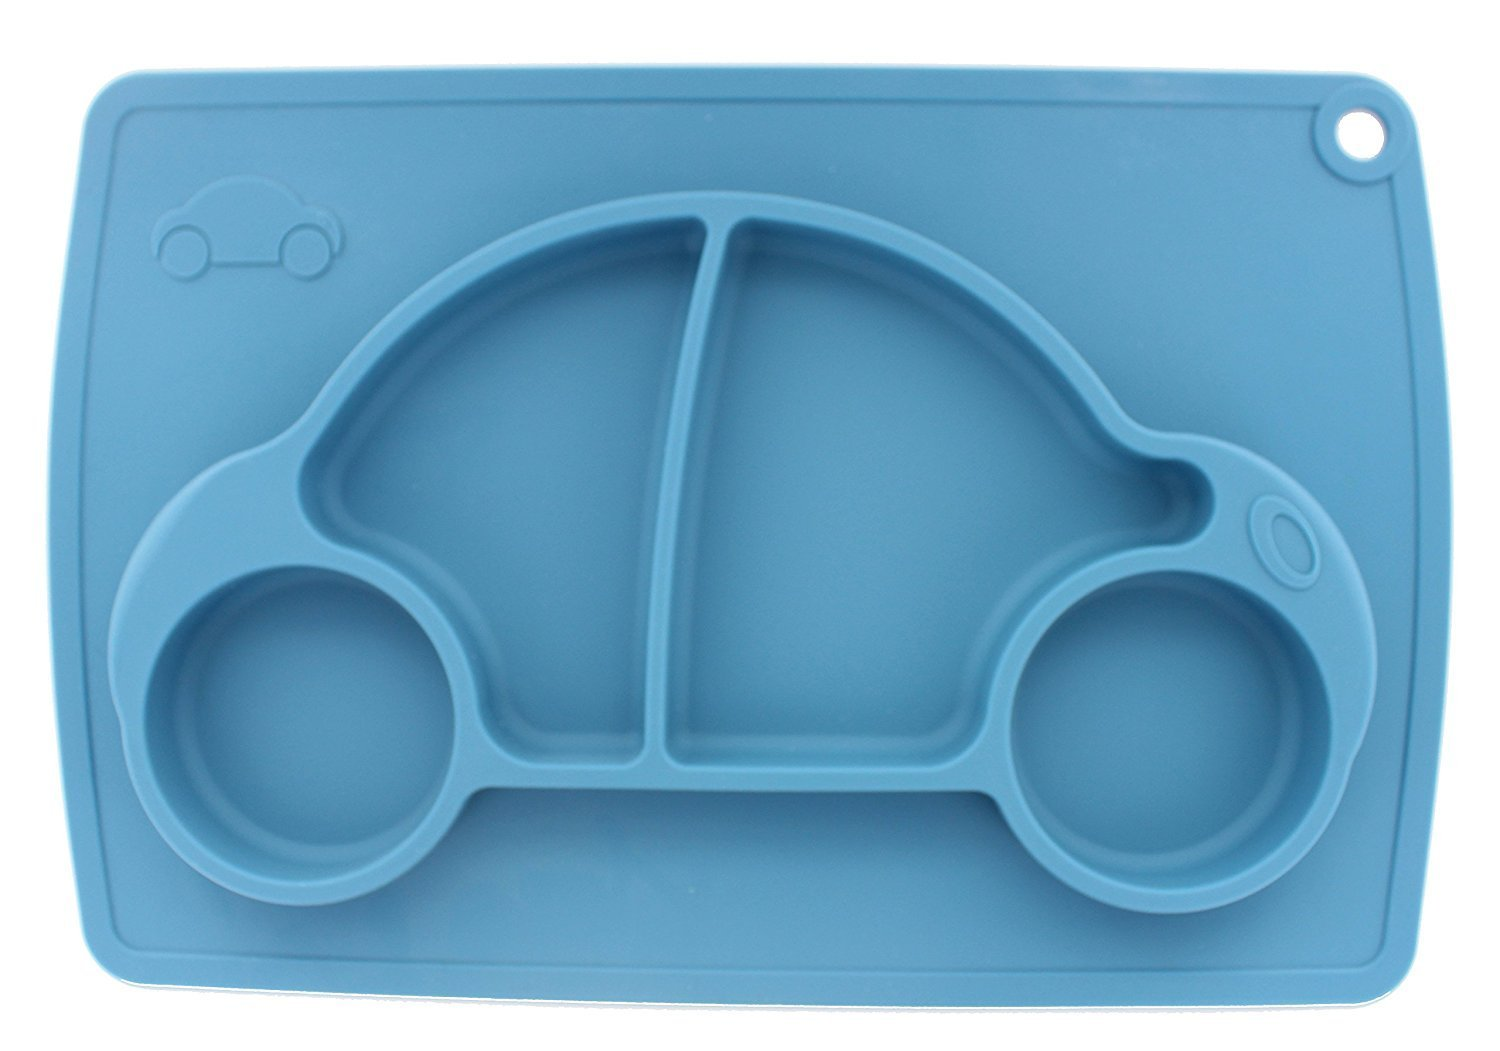 Car Silicone Baby Placemat Square Blue B071J5R4VV